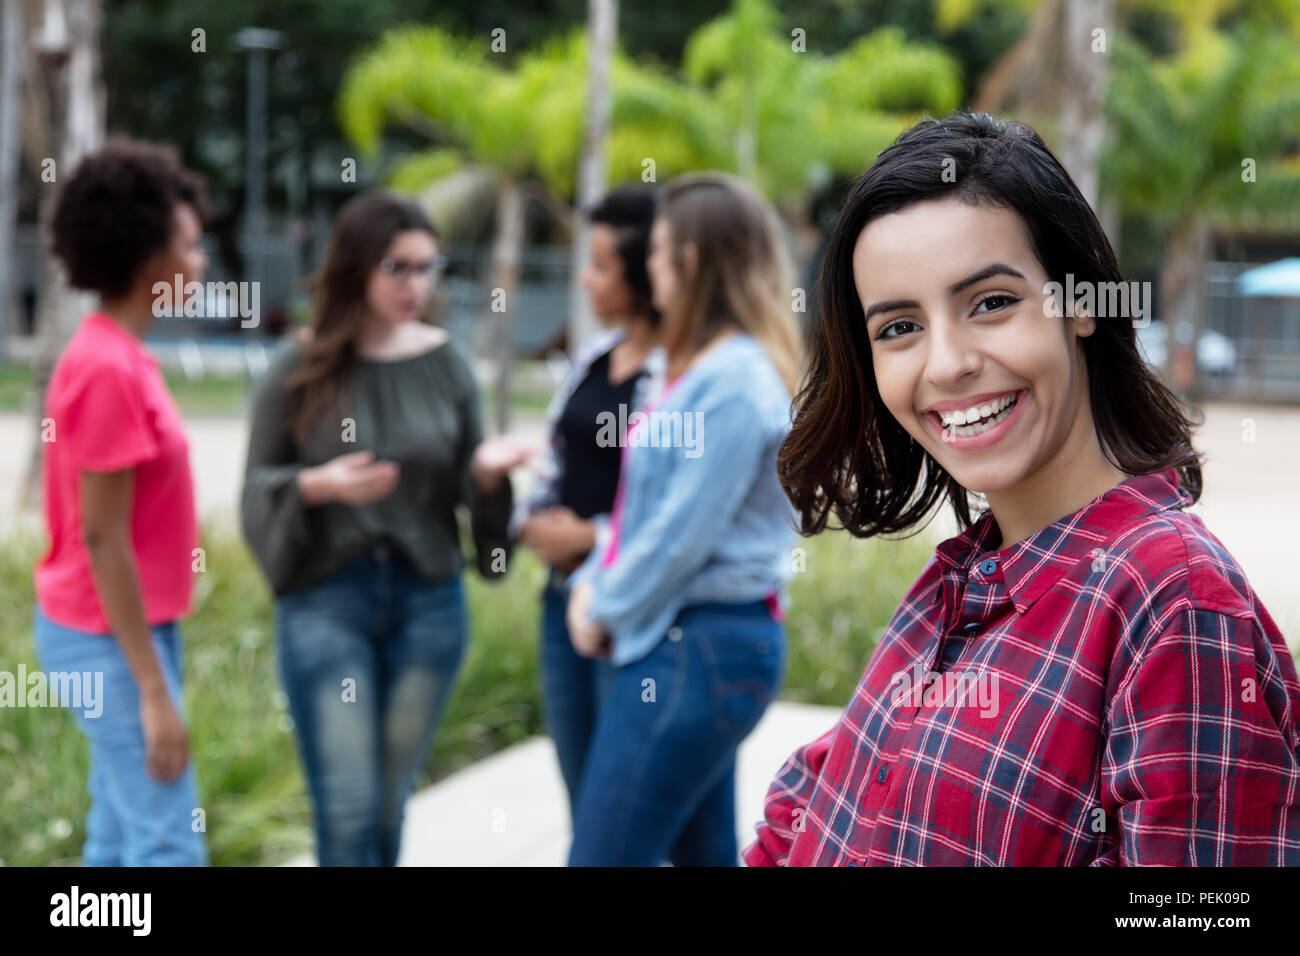 Laughing mexican young adult woman with girlfriends outdoors in the summer in the city - Stock Image